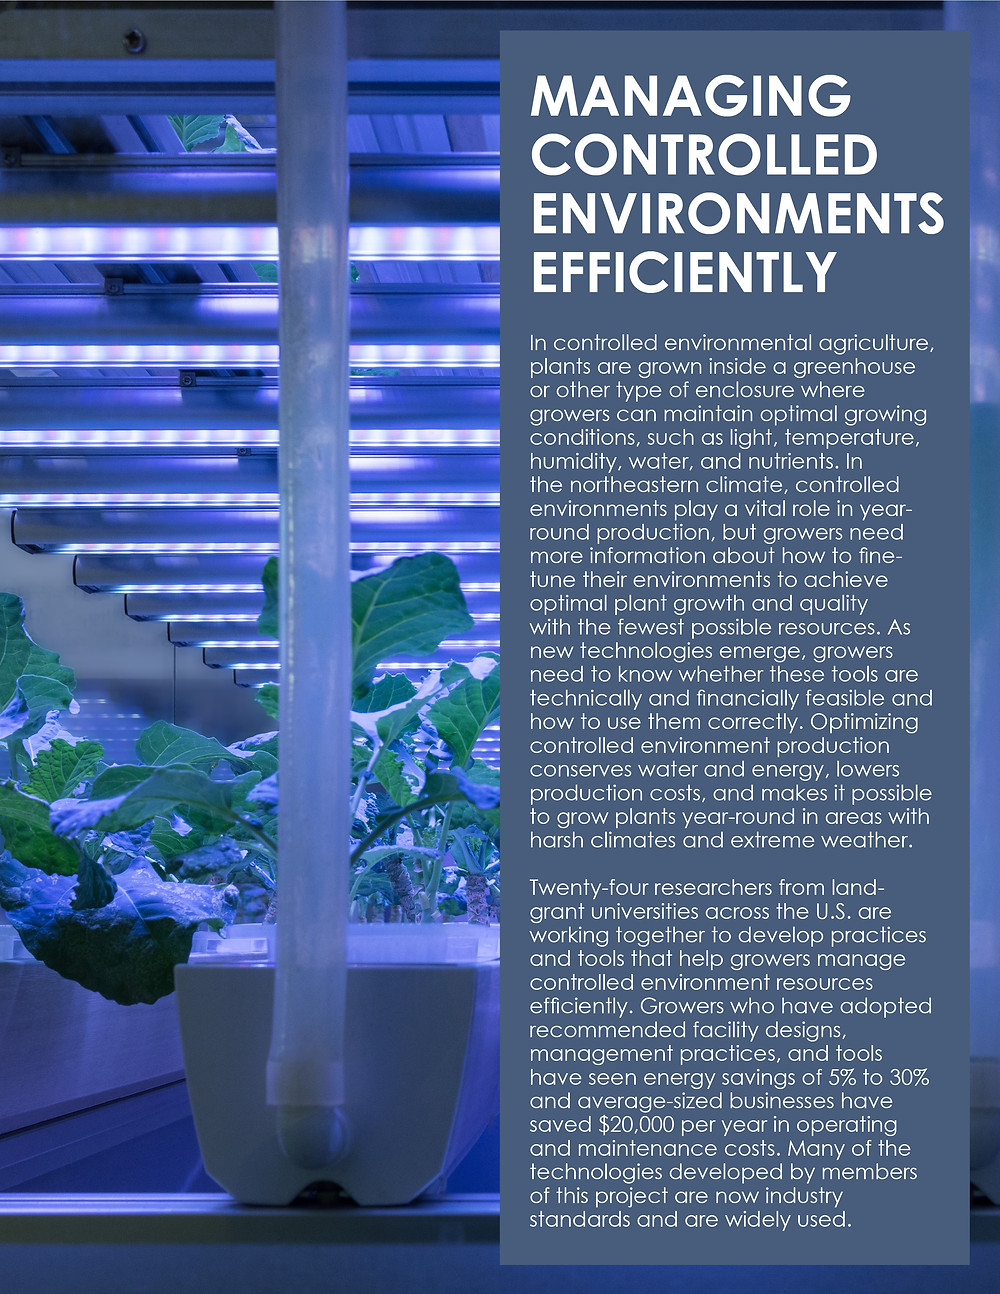 Impact Statement for NE1335, Managing Controlled Environments Efficiently. Click to view and download a PDF of the Impact Statement.